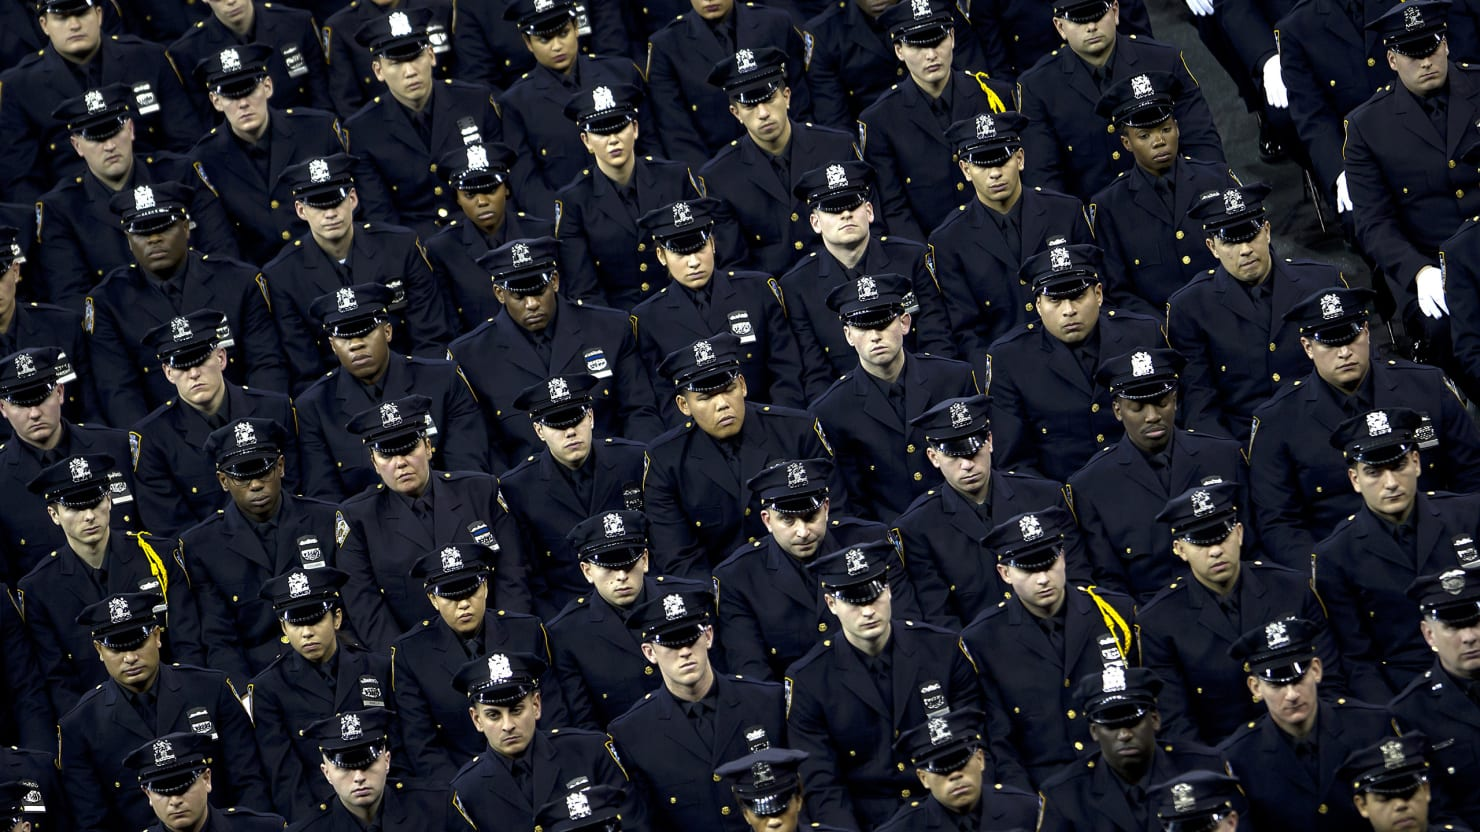 My Police Academy Teaches the 'War on Cops' Myth